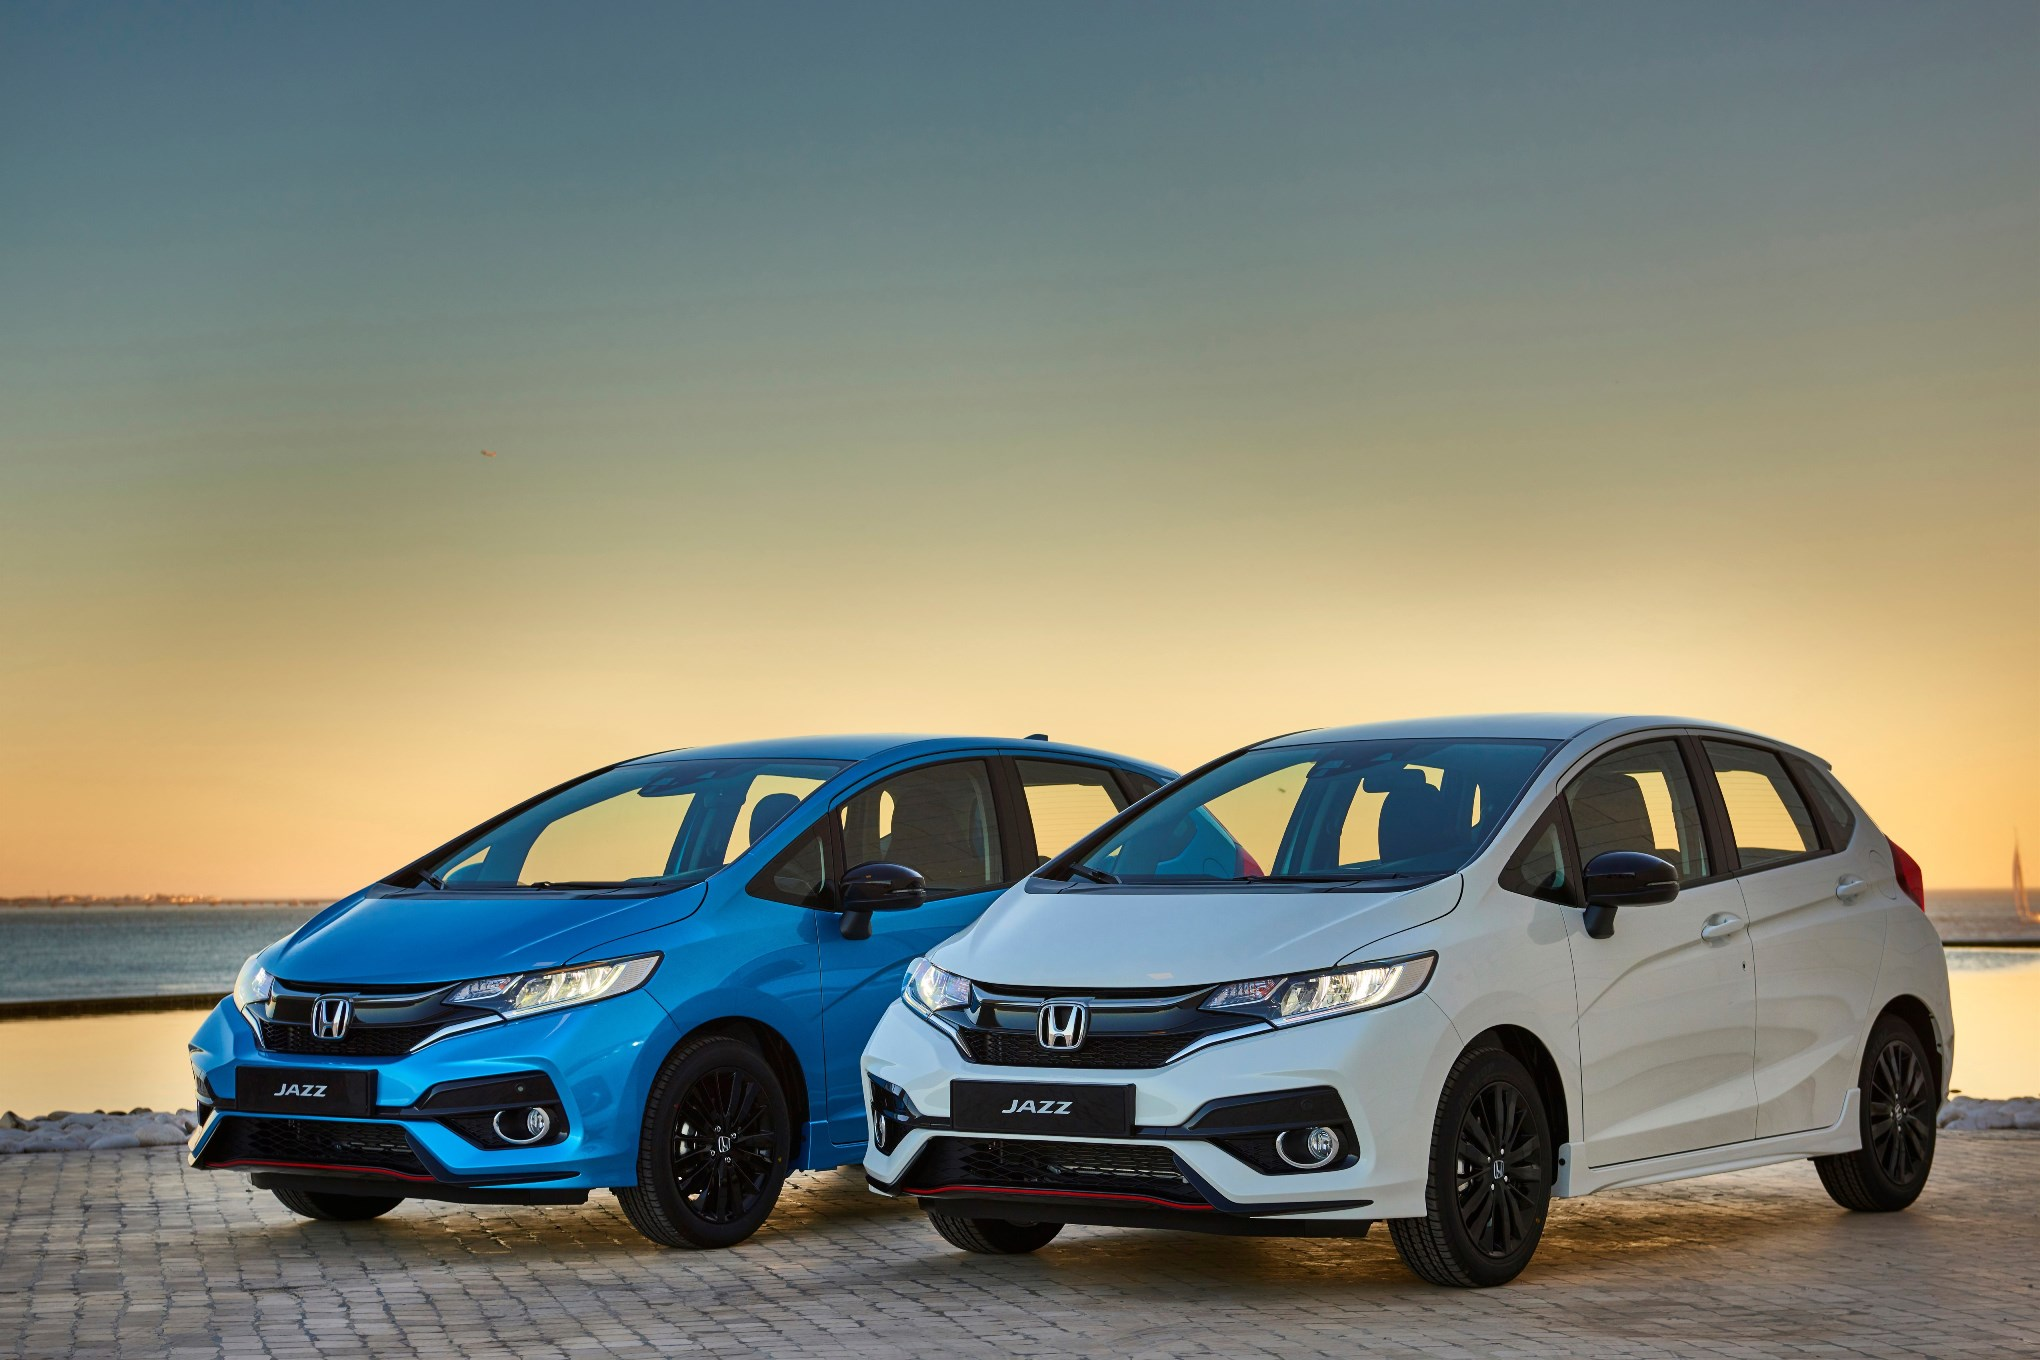 New Honda Jazz global facelift unveiled